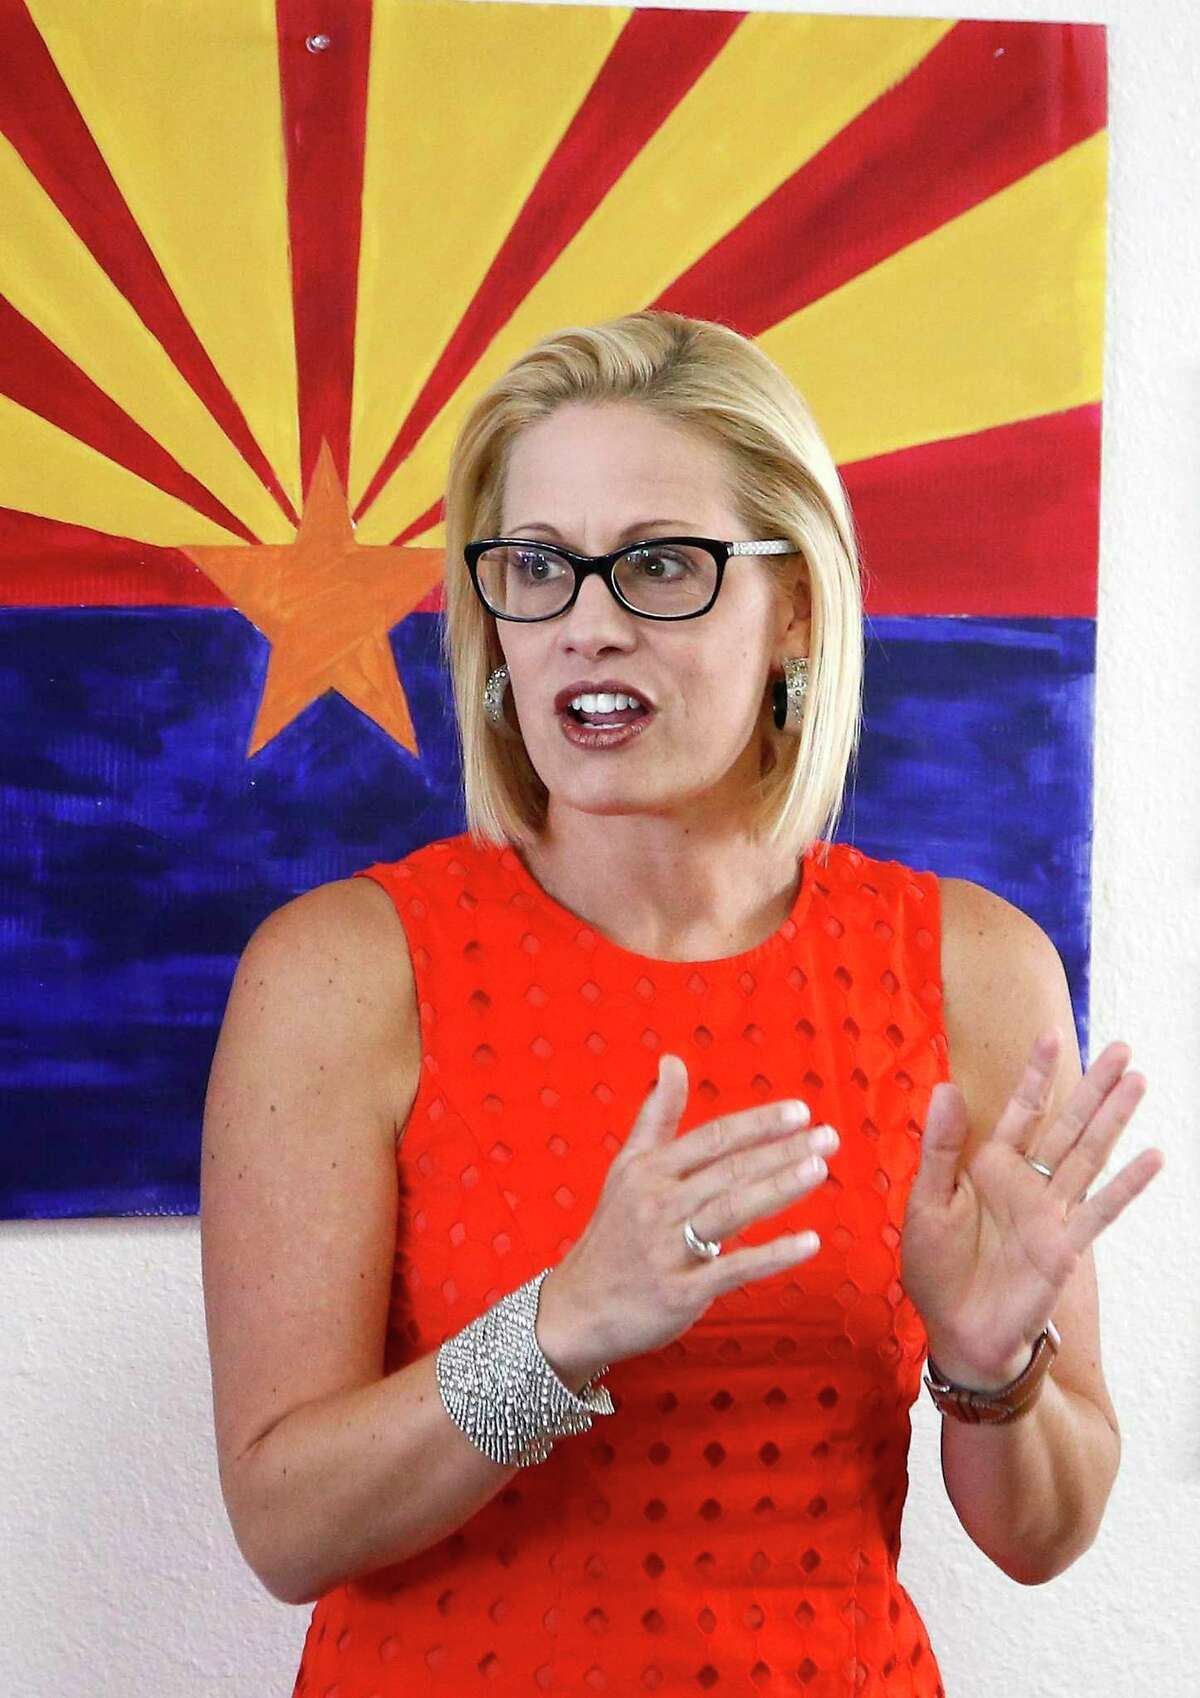 Somehow, we have gotten ourselves in a perverse situation where Kyrsten Sinema rules the world.